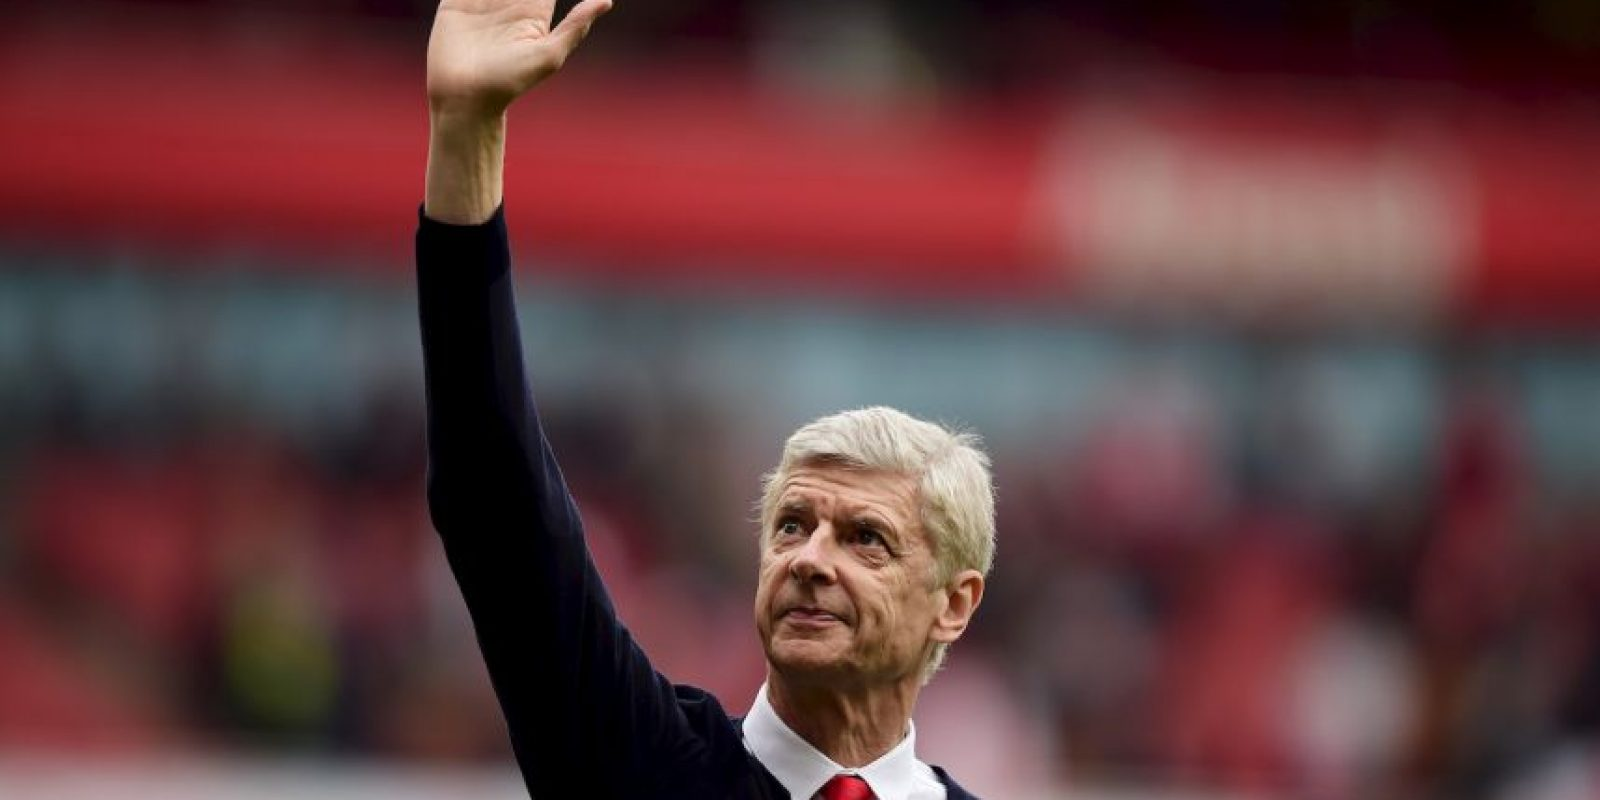 Arsene Wenger, DT del Arsenal Foto: Getty Images